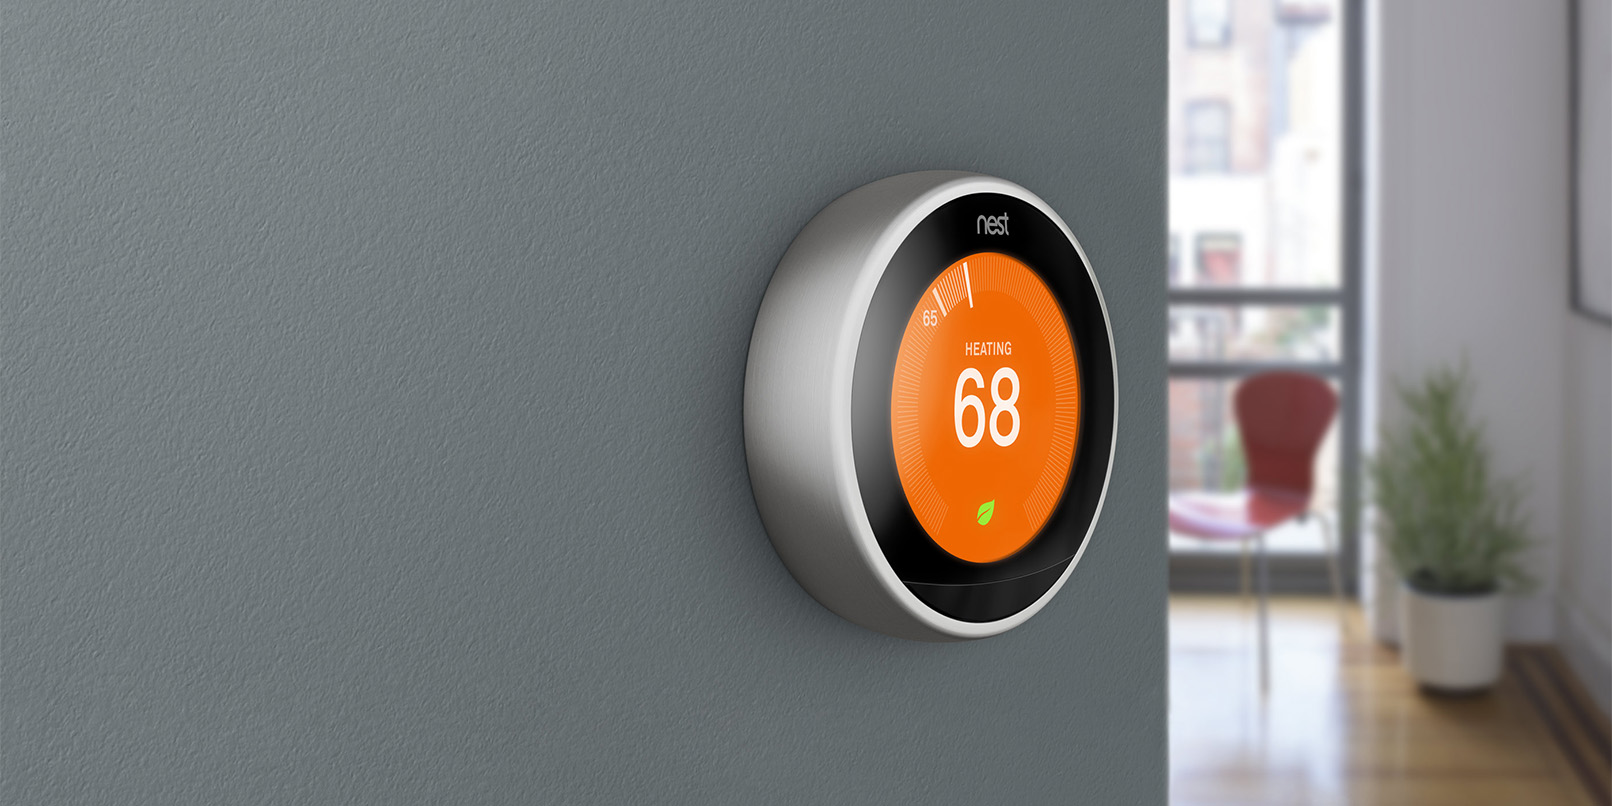 Google forces Nest users to use Google accounts, raising privacy concerns